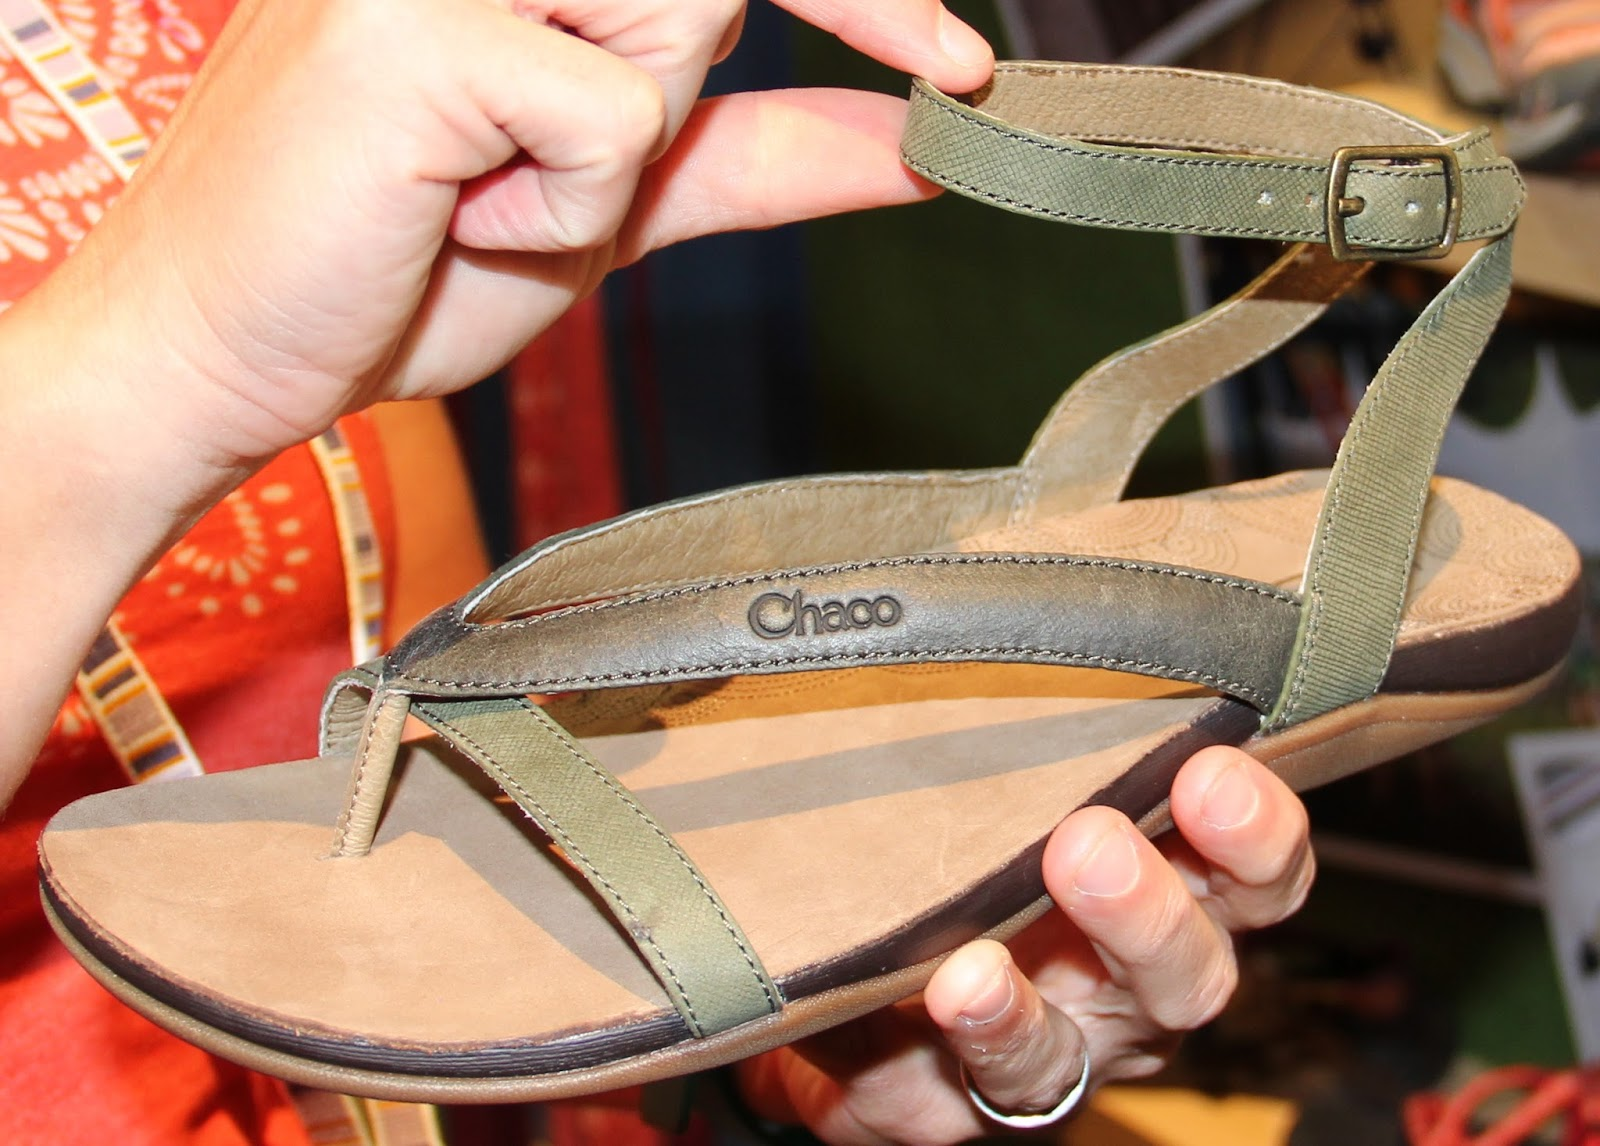 d0596849fd0c5 COOL TRENDS-Outdoor Retailer SS15 STAND-UP PB'S+WATER SHOES-Sperry ...